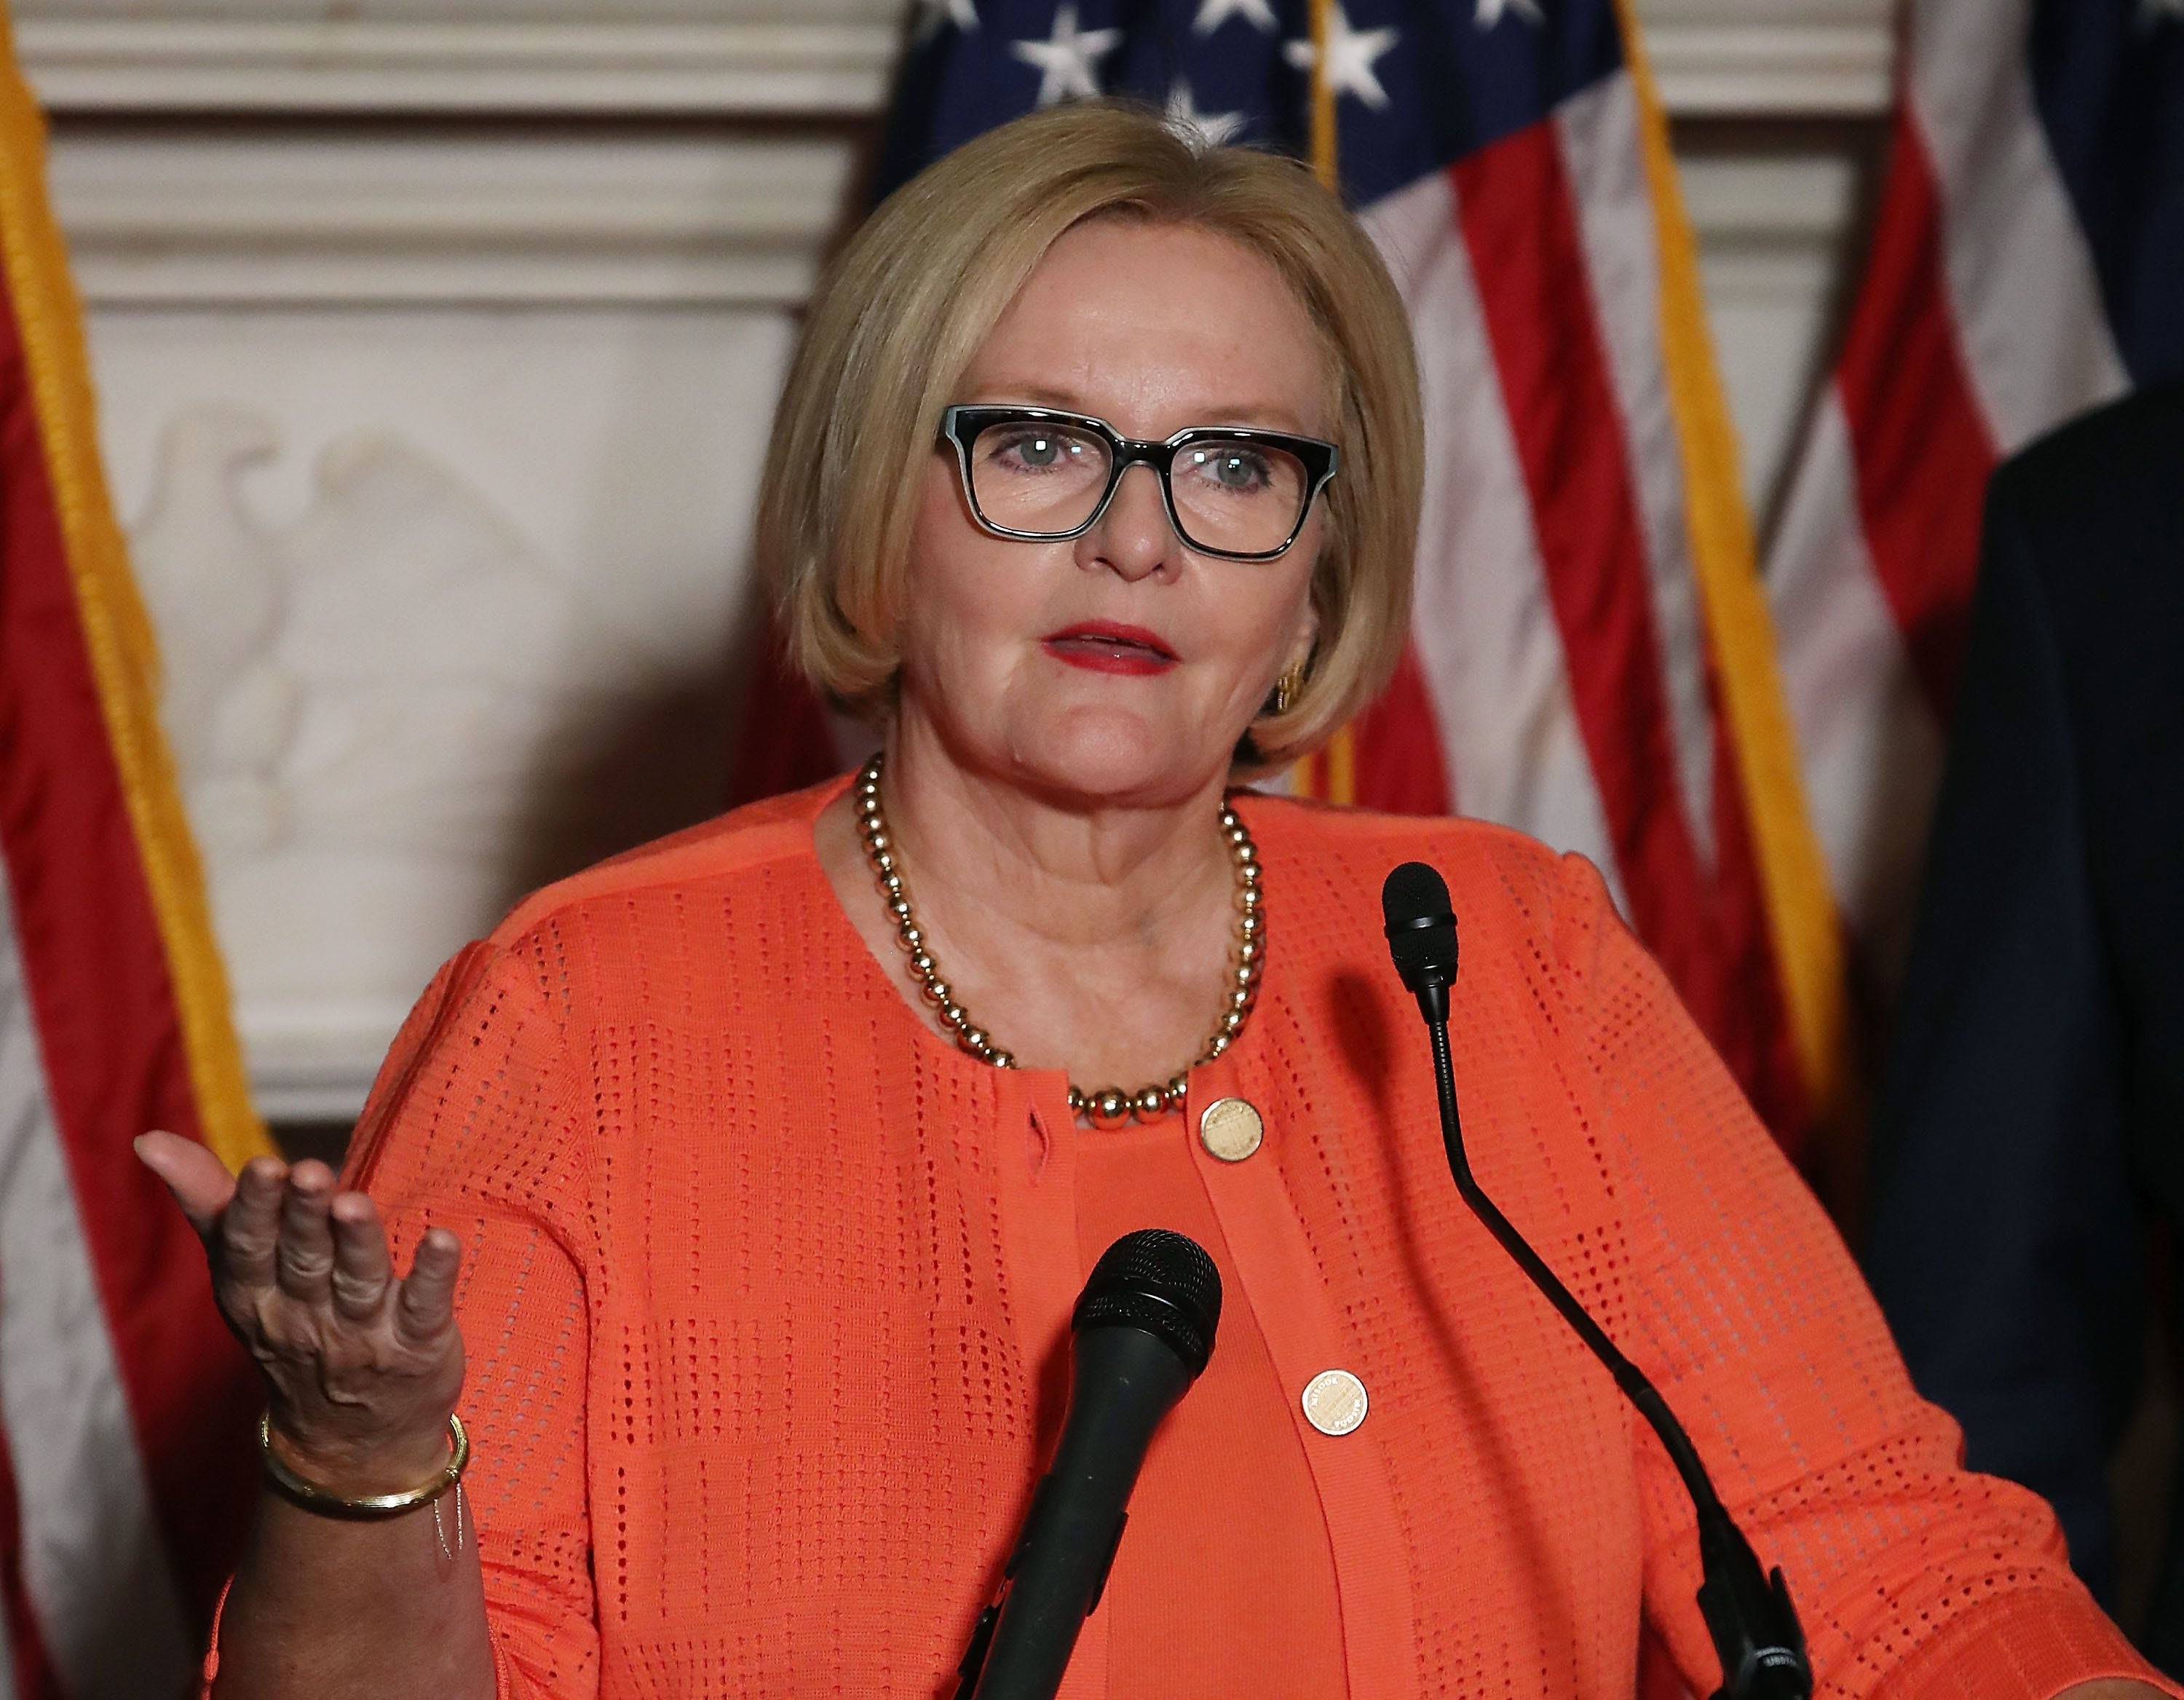 WASHINGTON, DC - JULY 19:  Sen. Claire McCaskill (D-MO) speaks on a proposed protection plan for people with pre-existing health conditions, during a news conference on Capitol Hill July 19, 2018 in Washington, DC.  (Photo by Mark Wilson/Getty Images)